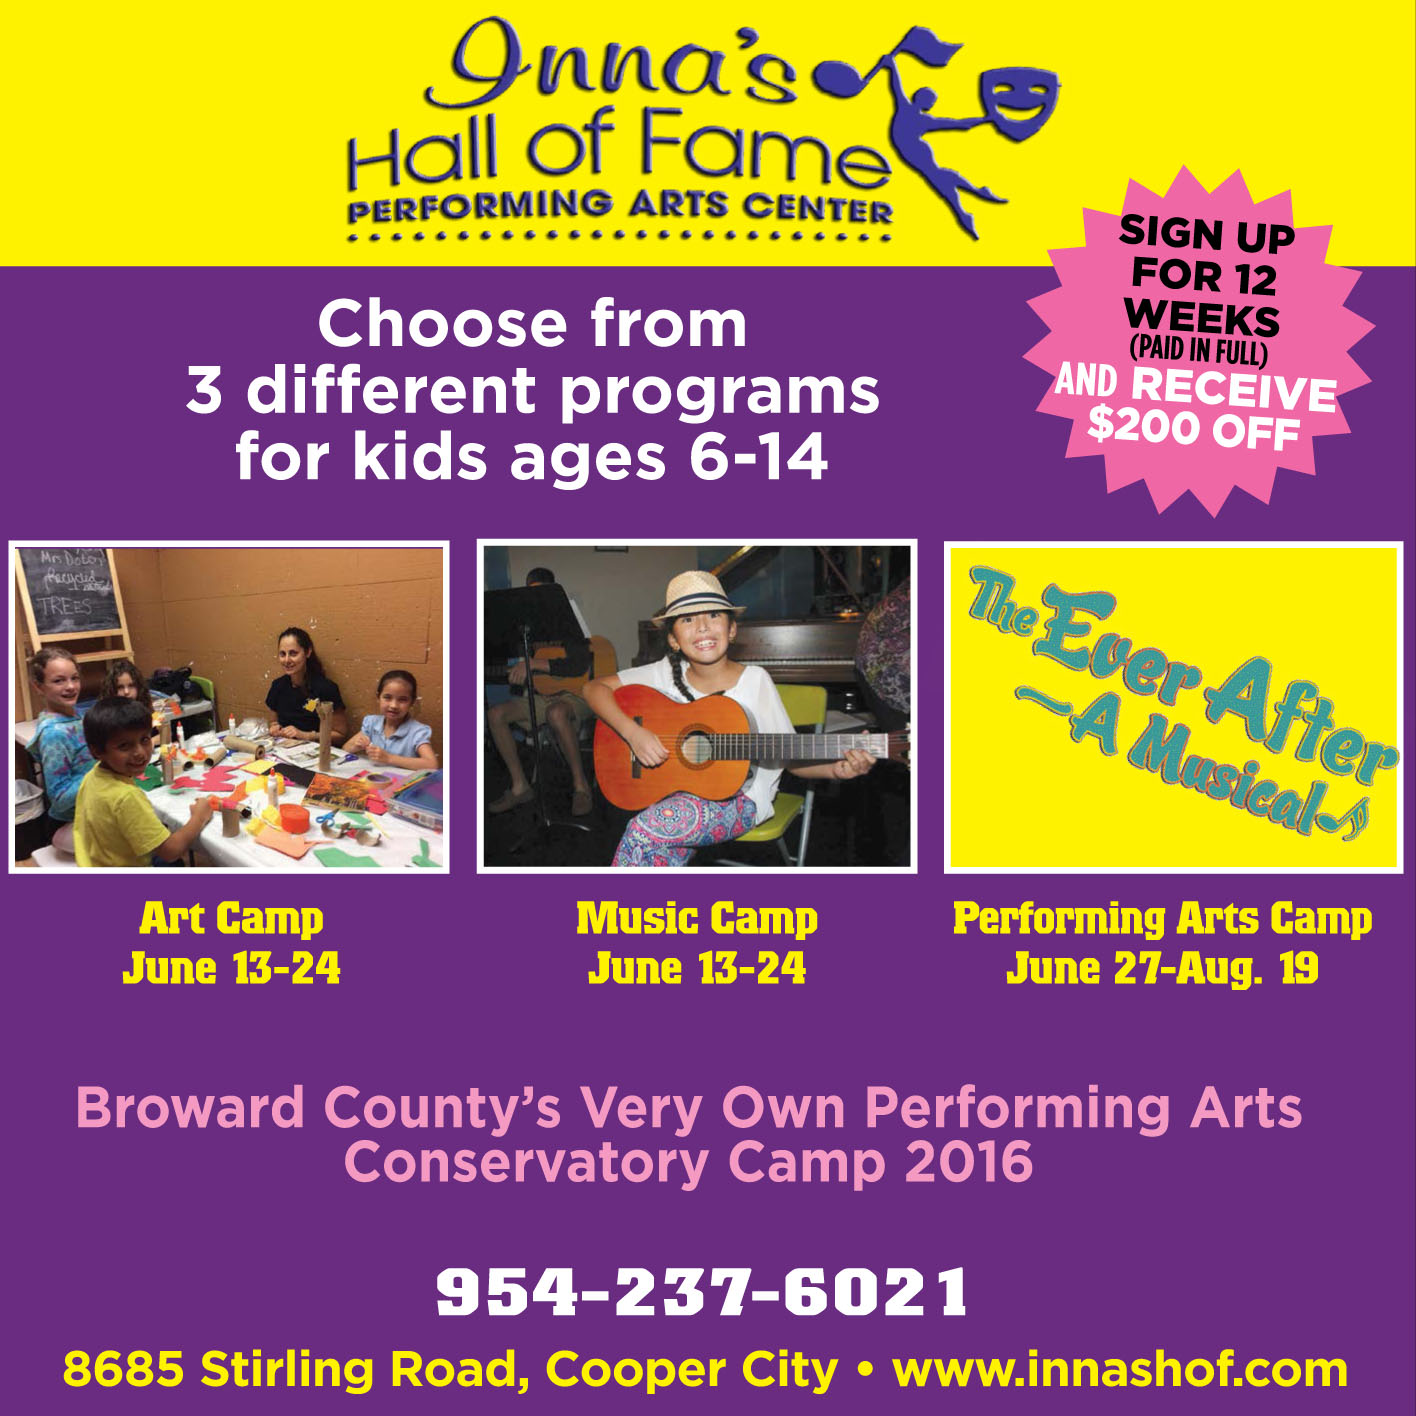 Summer Camp at Inna's Hall of Fame Performing Arts